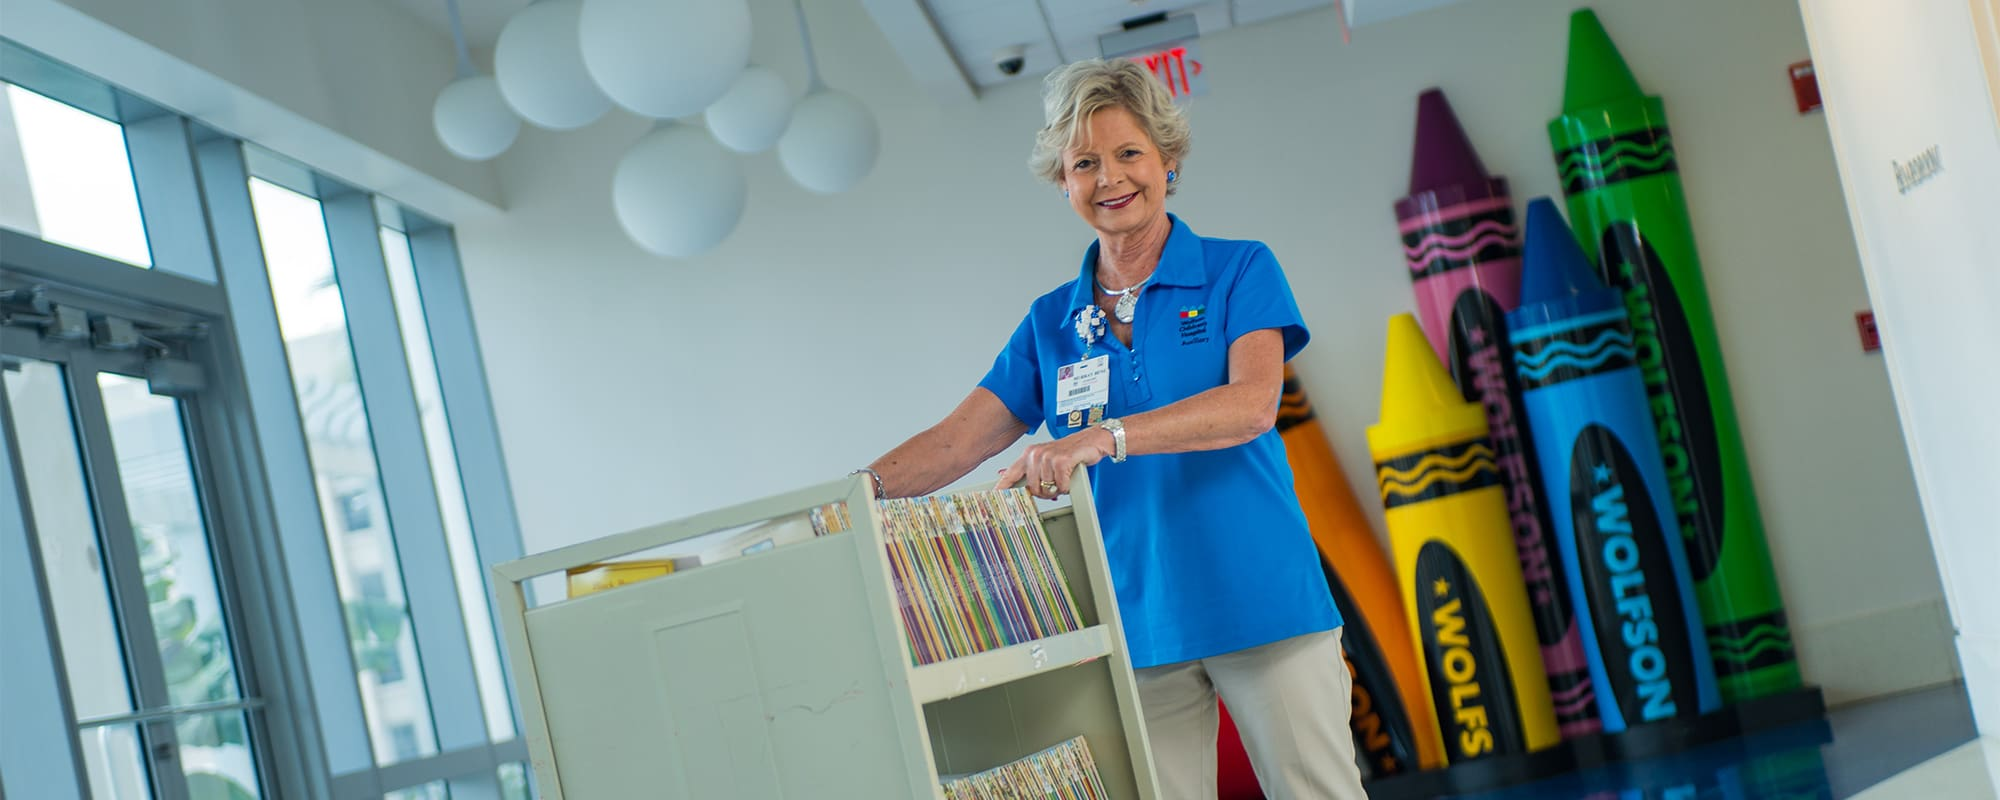 A volunteer at Wolfson Children's Hospital